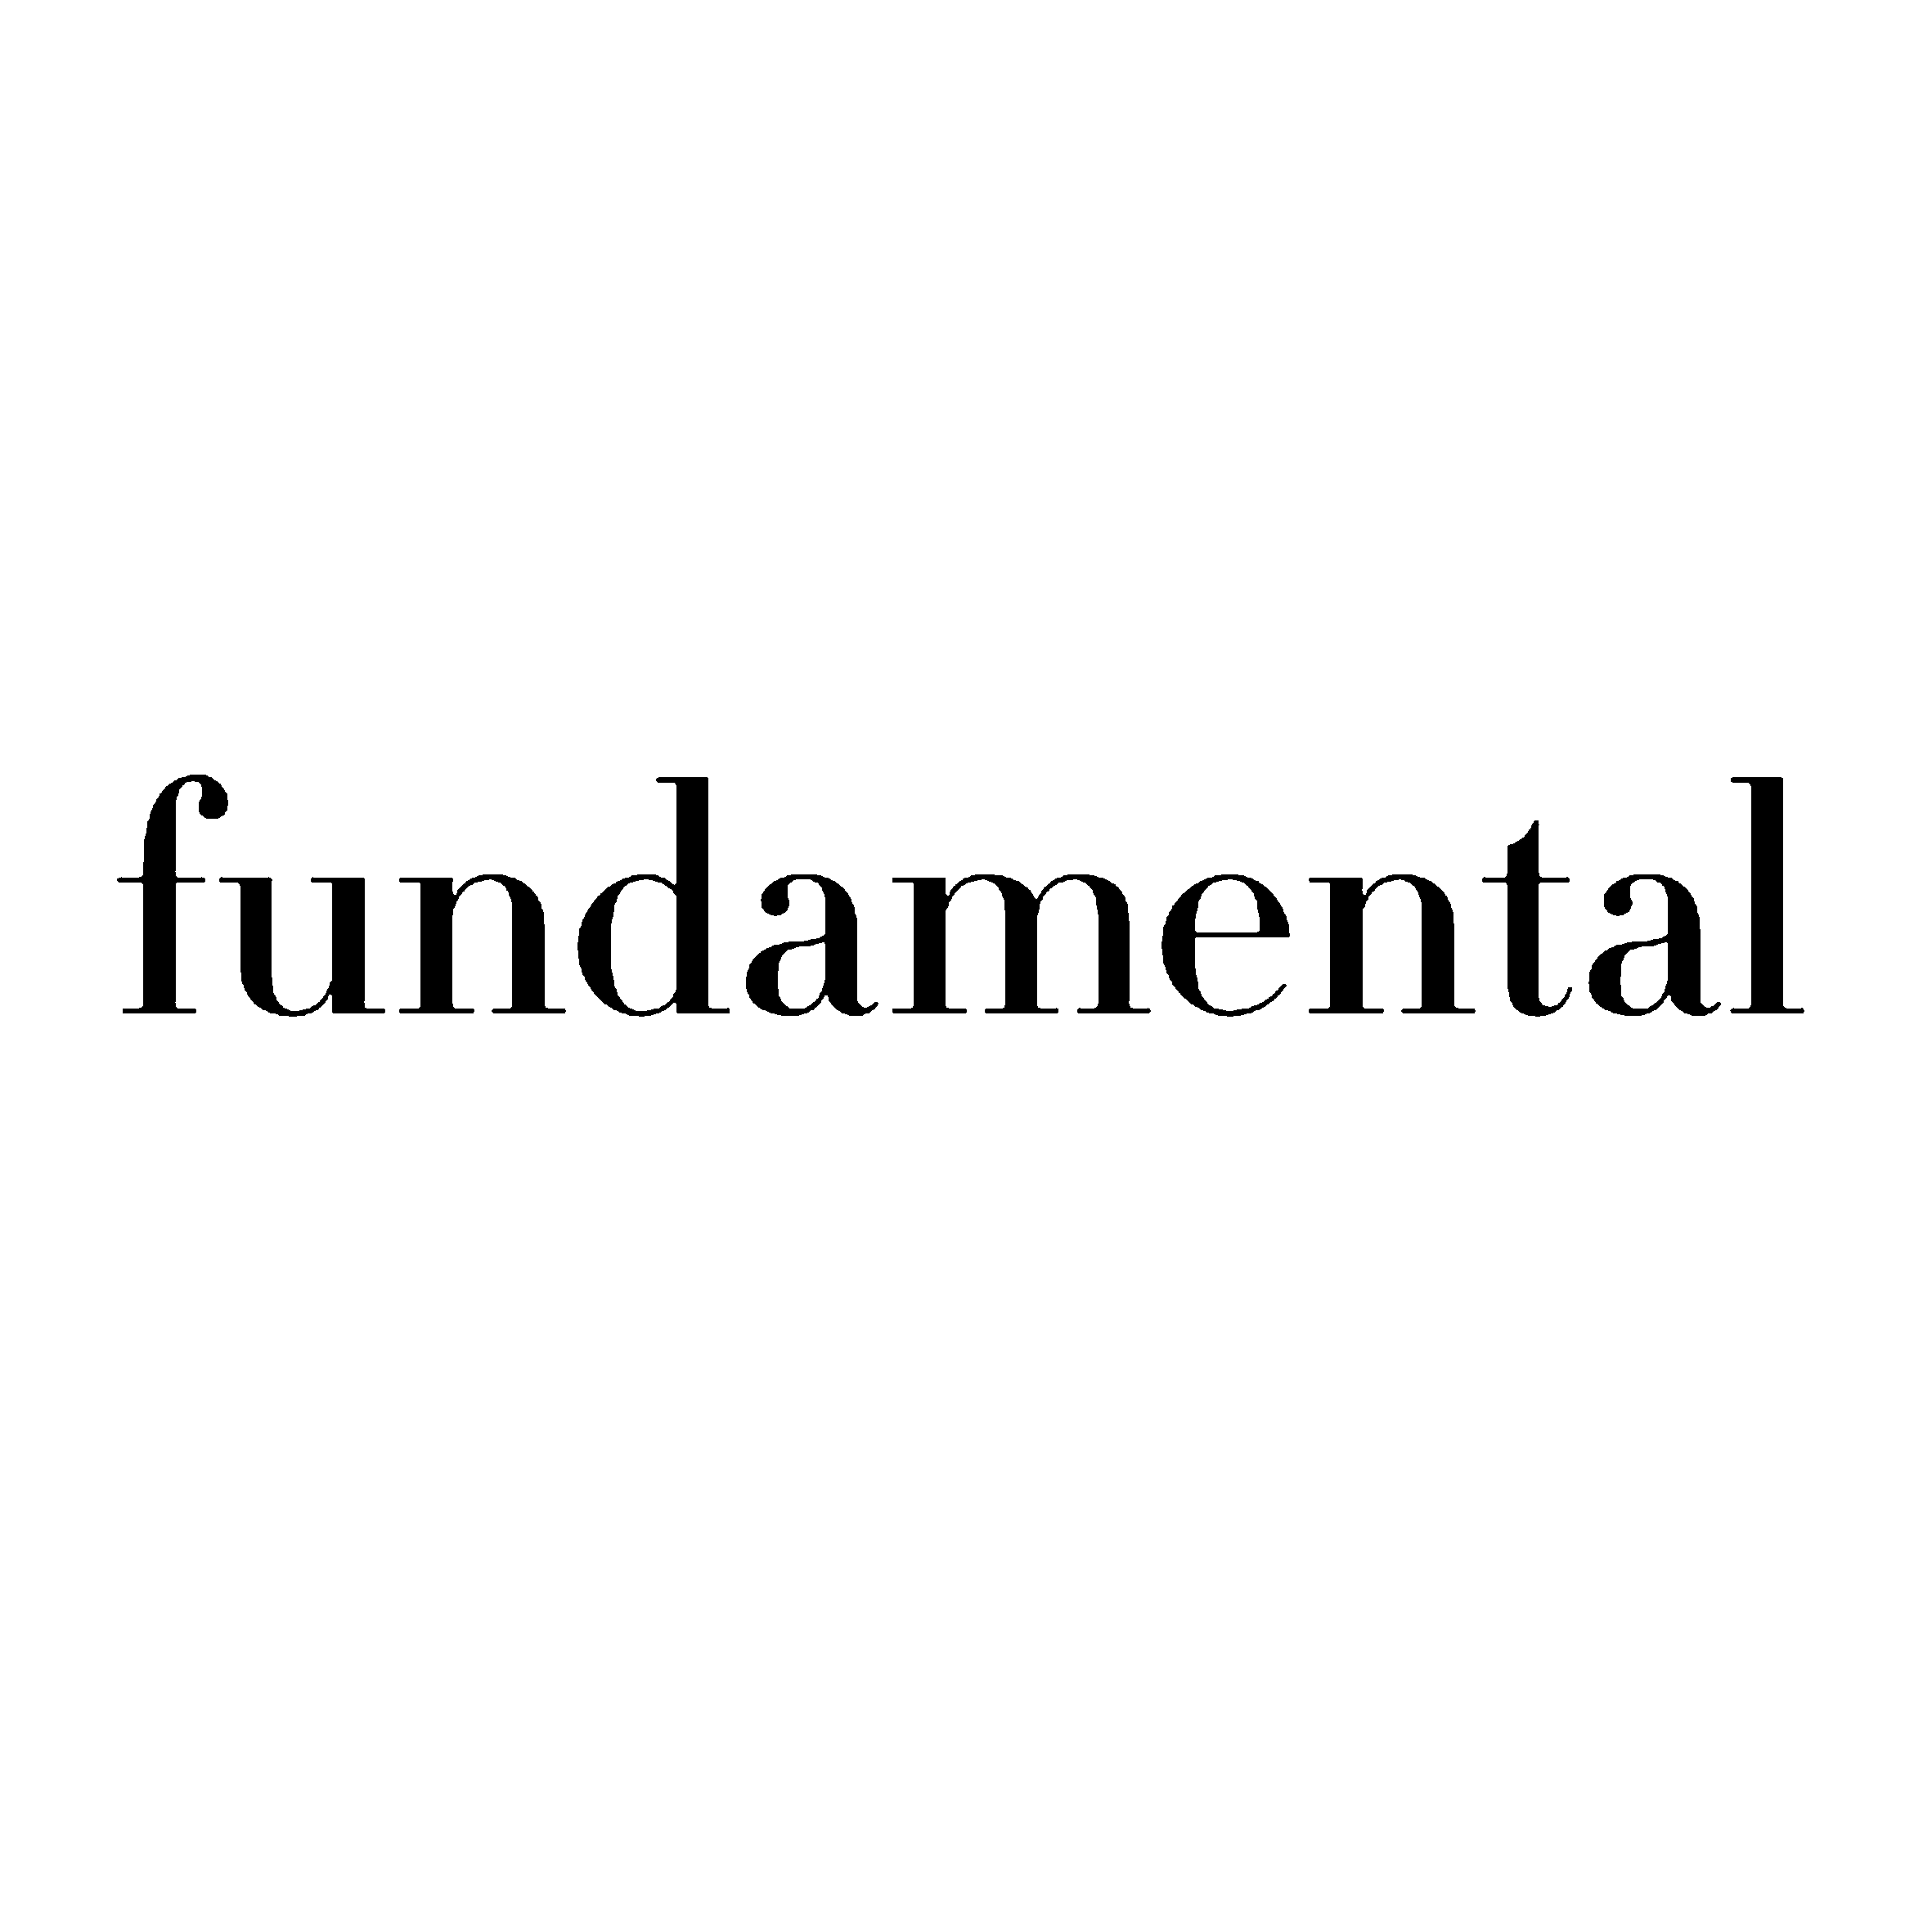 fundamental_logo.png